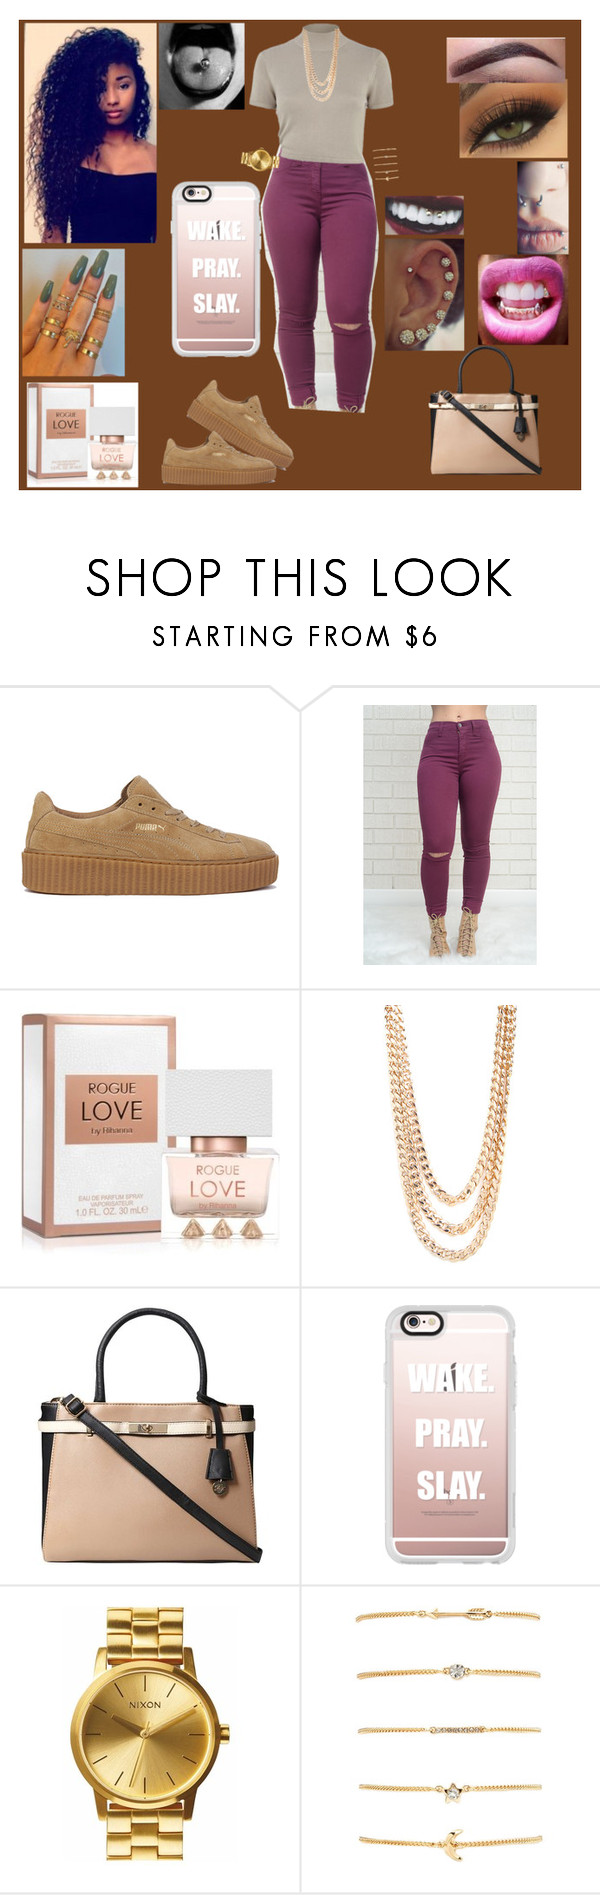 """Untitled #74"" by ayannalovebug ❤ liked on Polyvore featuring Puma, River Island, BaubleBar, Dorothy Perkins, Casetify, Nixon and Forever 21"